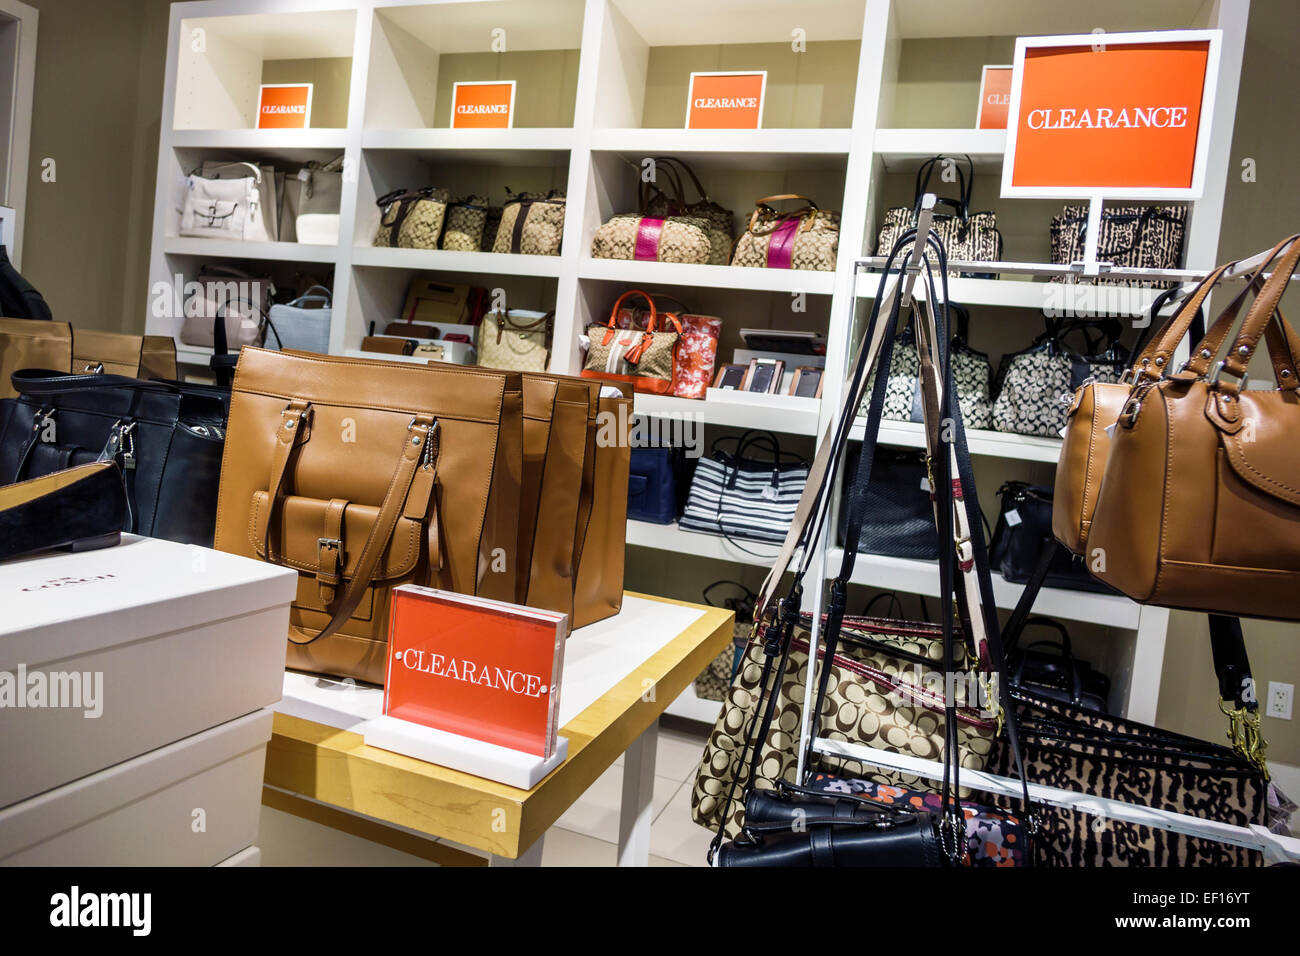 7731af1124 Vero Beach Florida Vero Beach Outlets shopping Coach store inside women s  handbags sale display sign clearance promotion